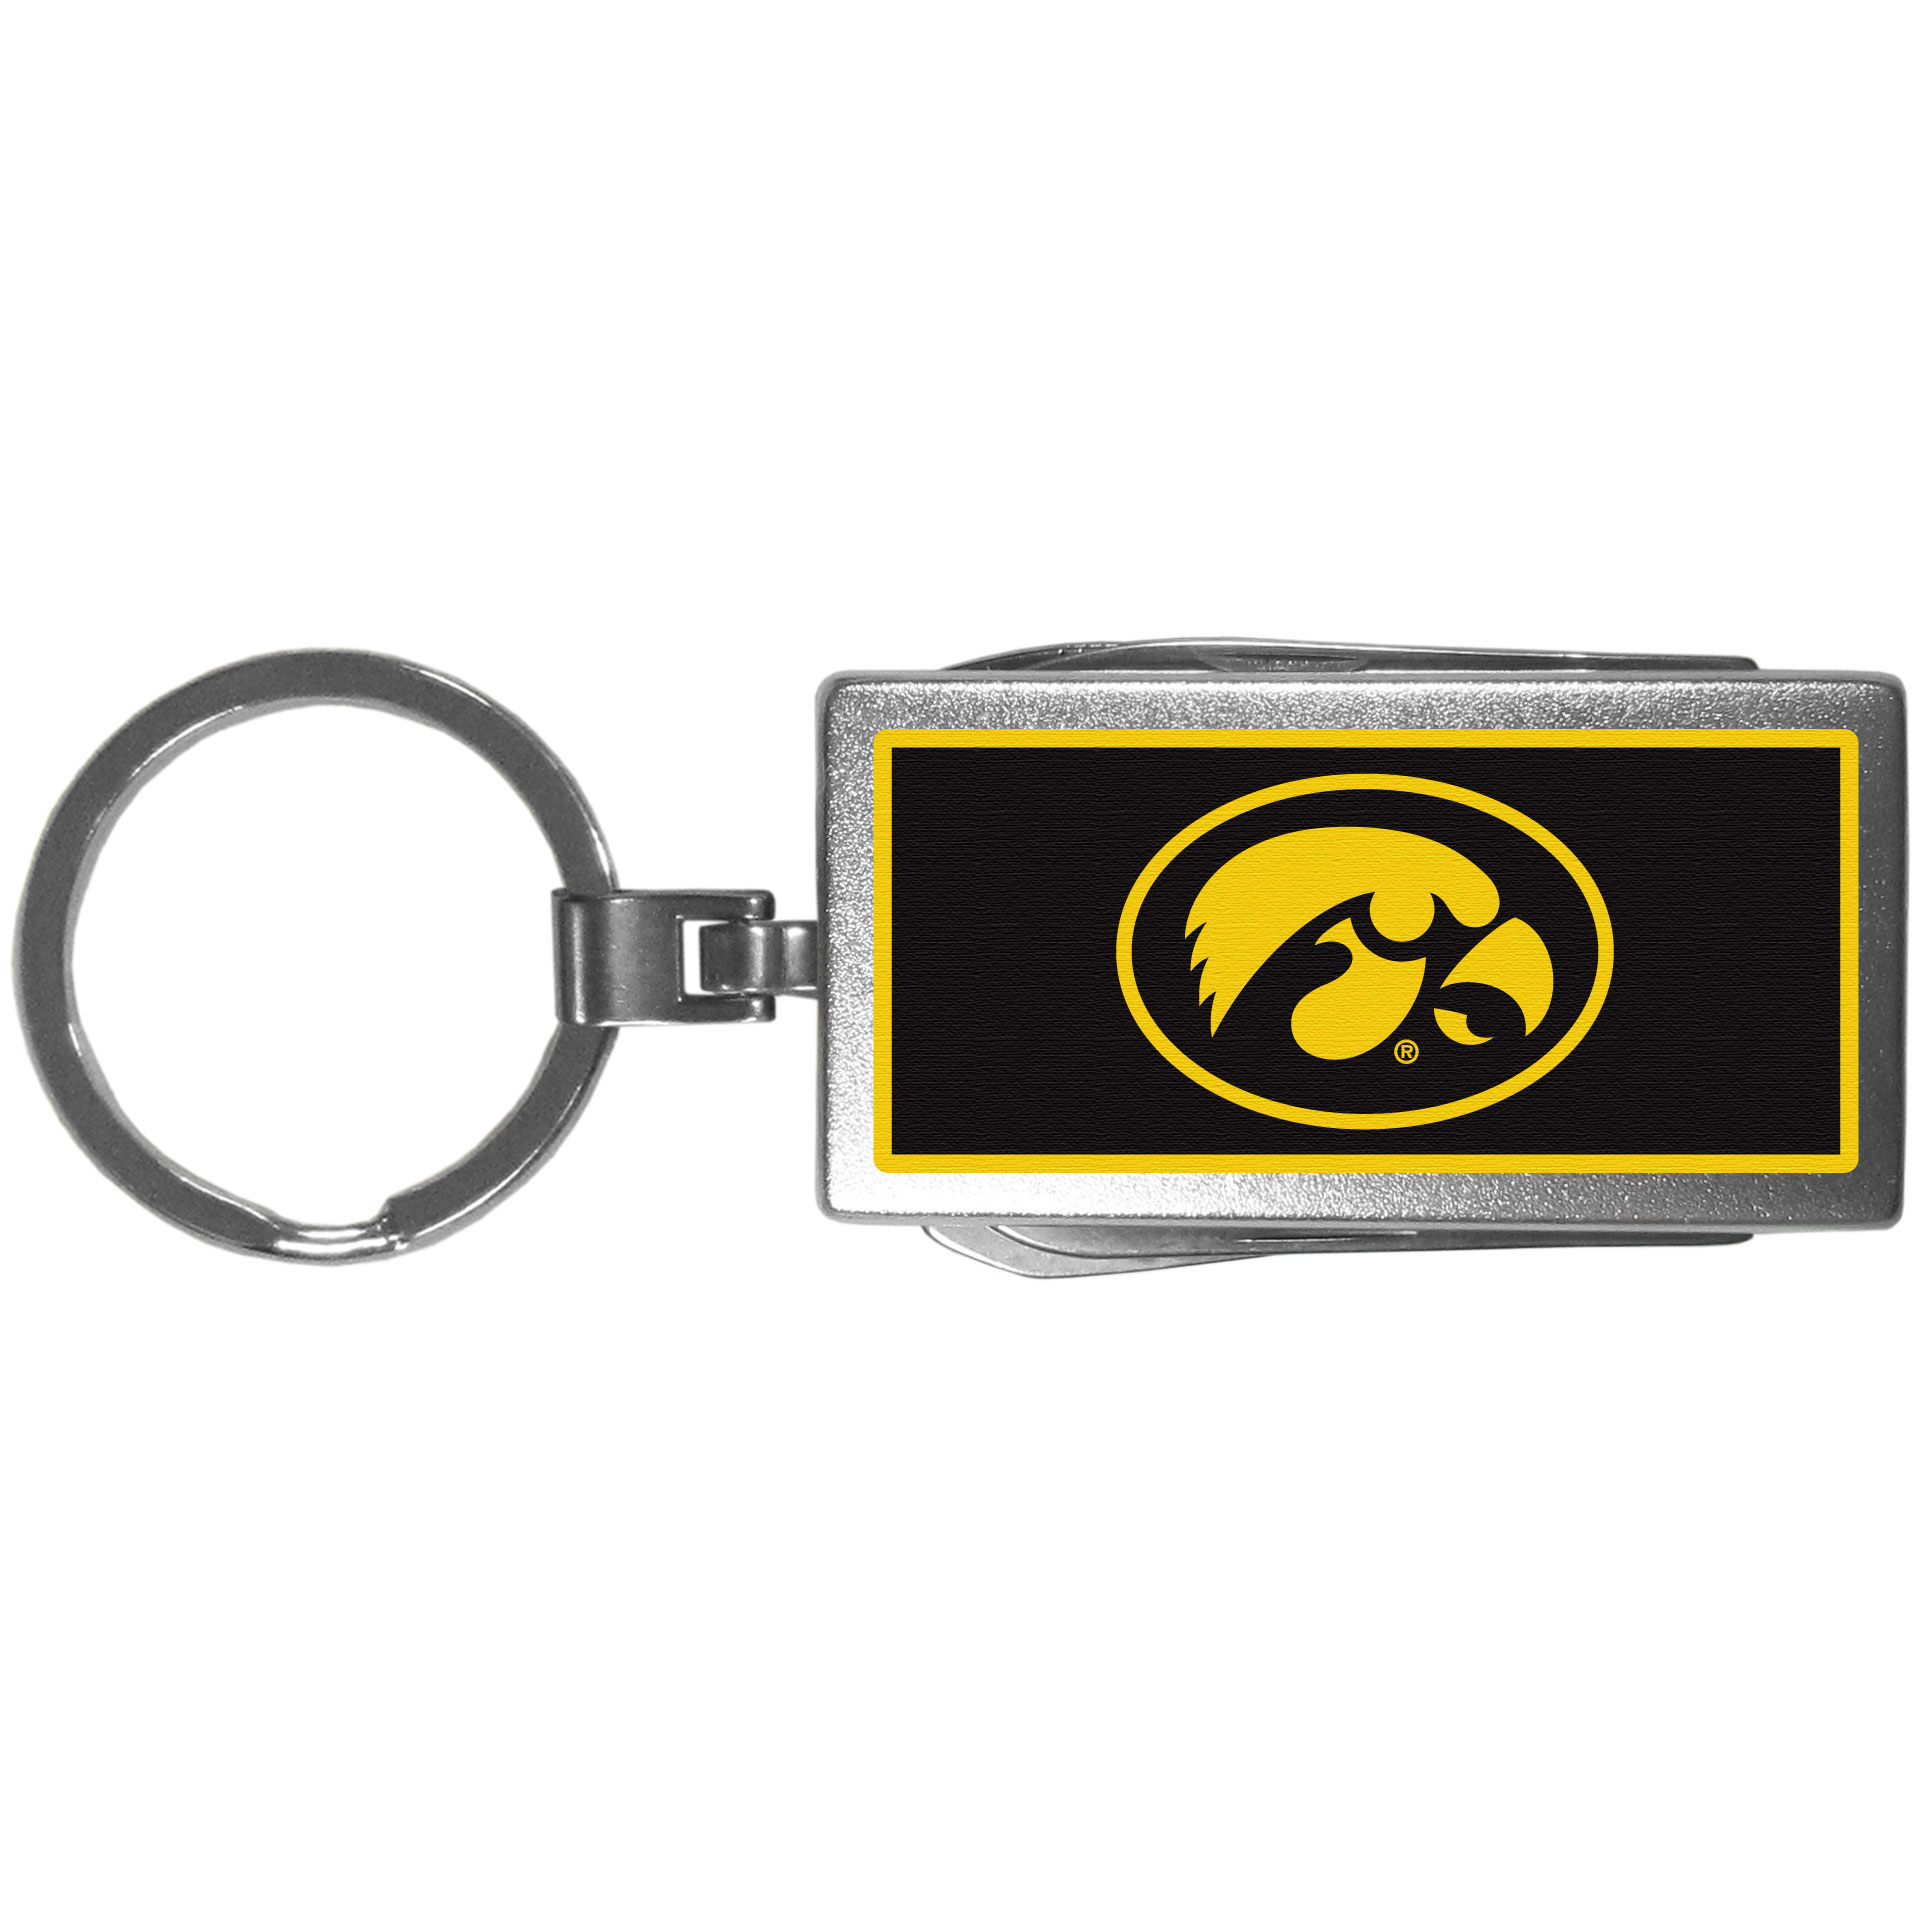 Iowa Hawkeyes Multi-tool Key Chain, Logo - Be the hero at the tailgate, camping, or on a Friday night with your Iowa Hawkeyes Multi-Tool Keychain which comes complete with bottle opener, scissors, knife, nail file and screw driver. Be it opening a package or a beverage Siskiyou's Multi-Tool Keychain goes wherever your keys do. The keychain hangs at 4 inches long when closed.